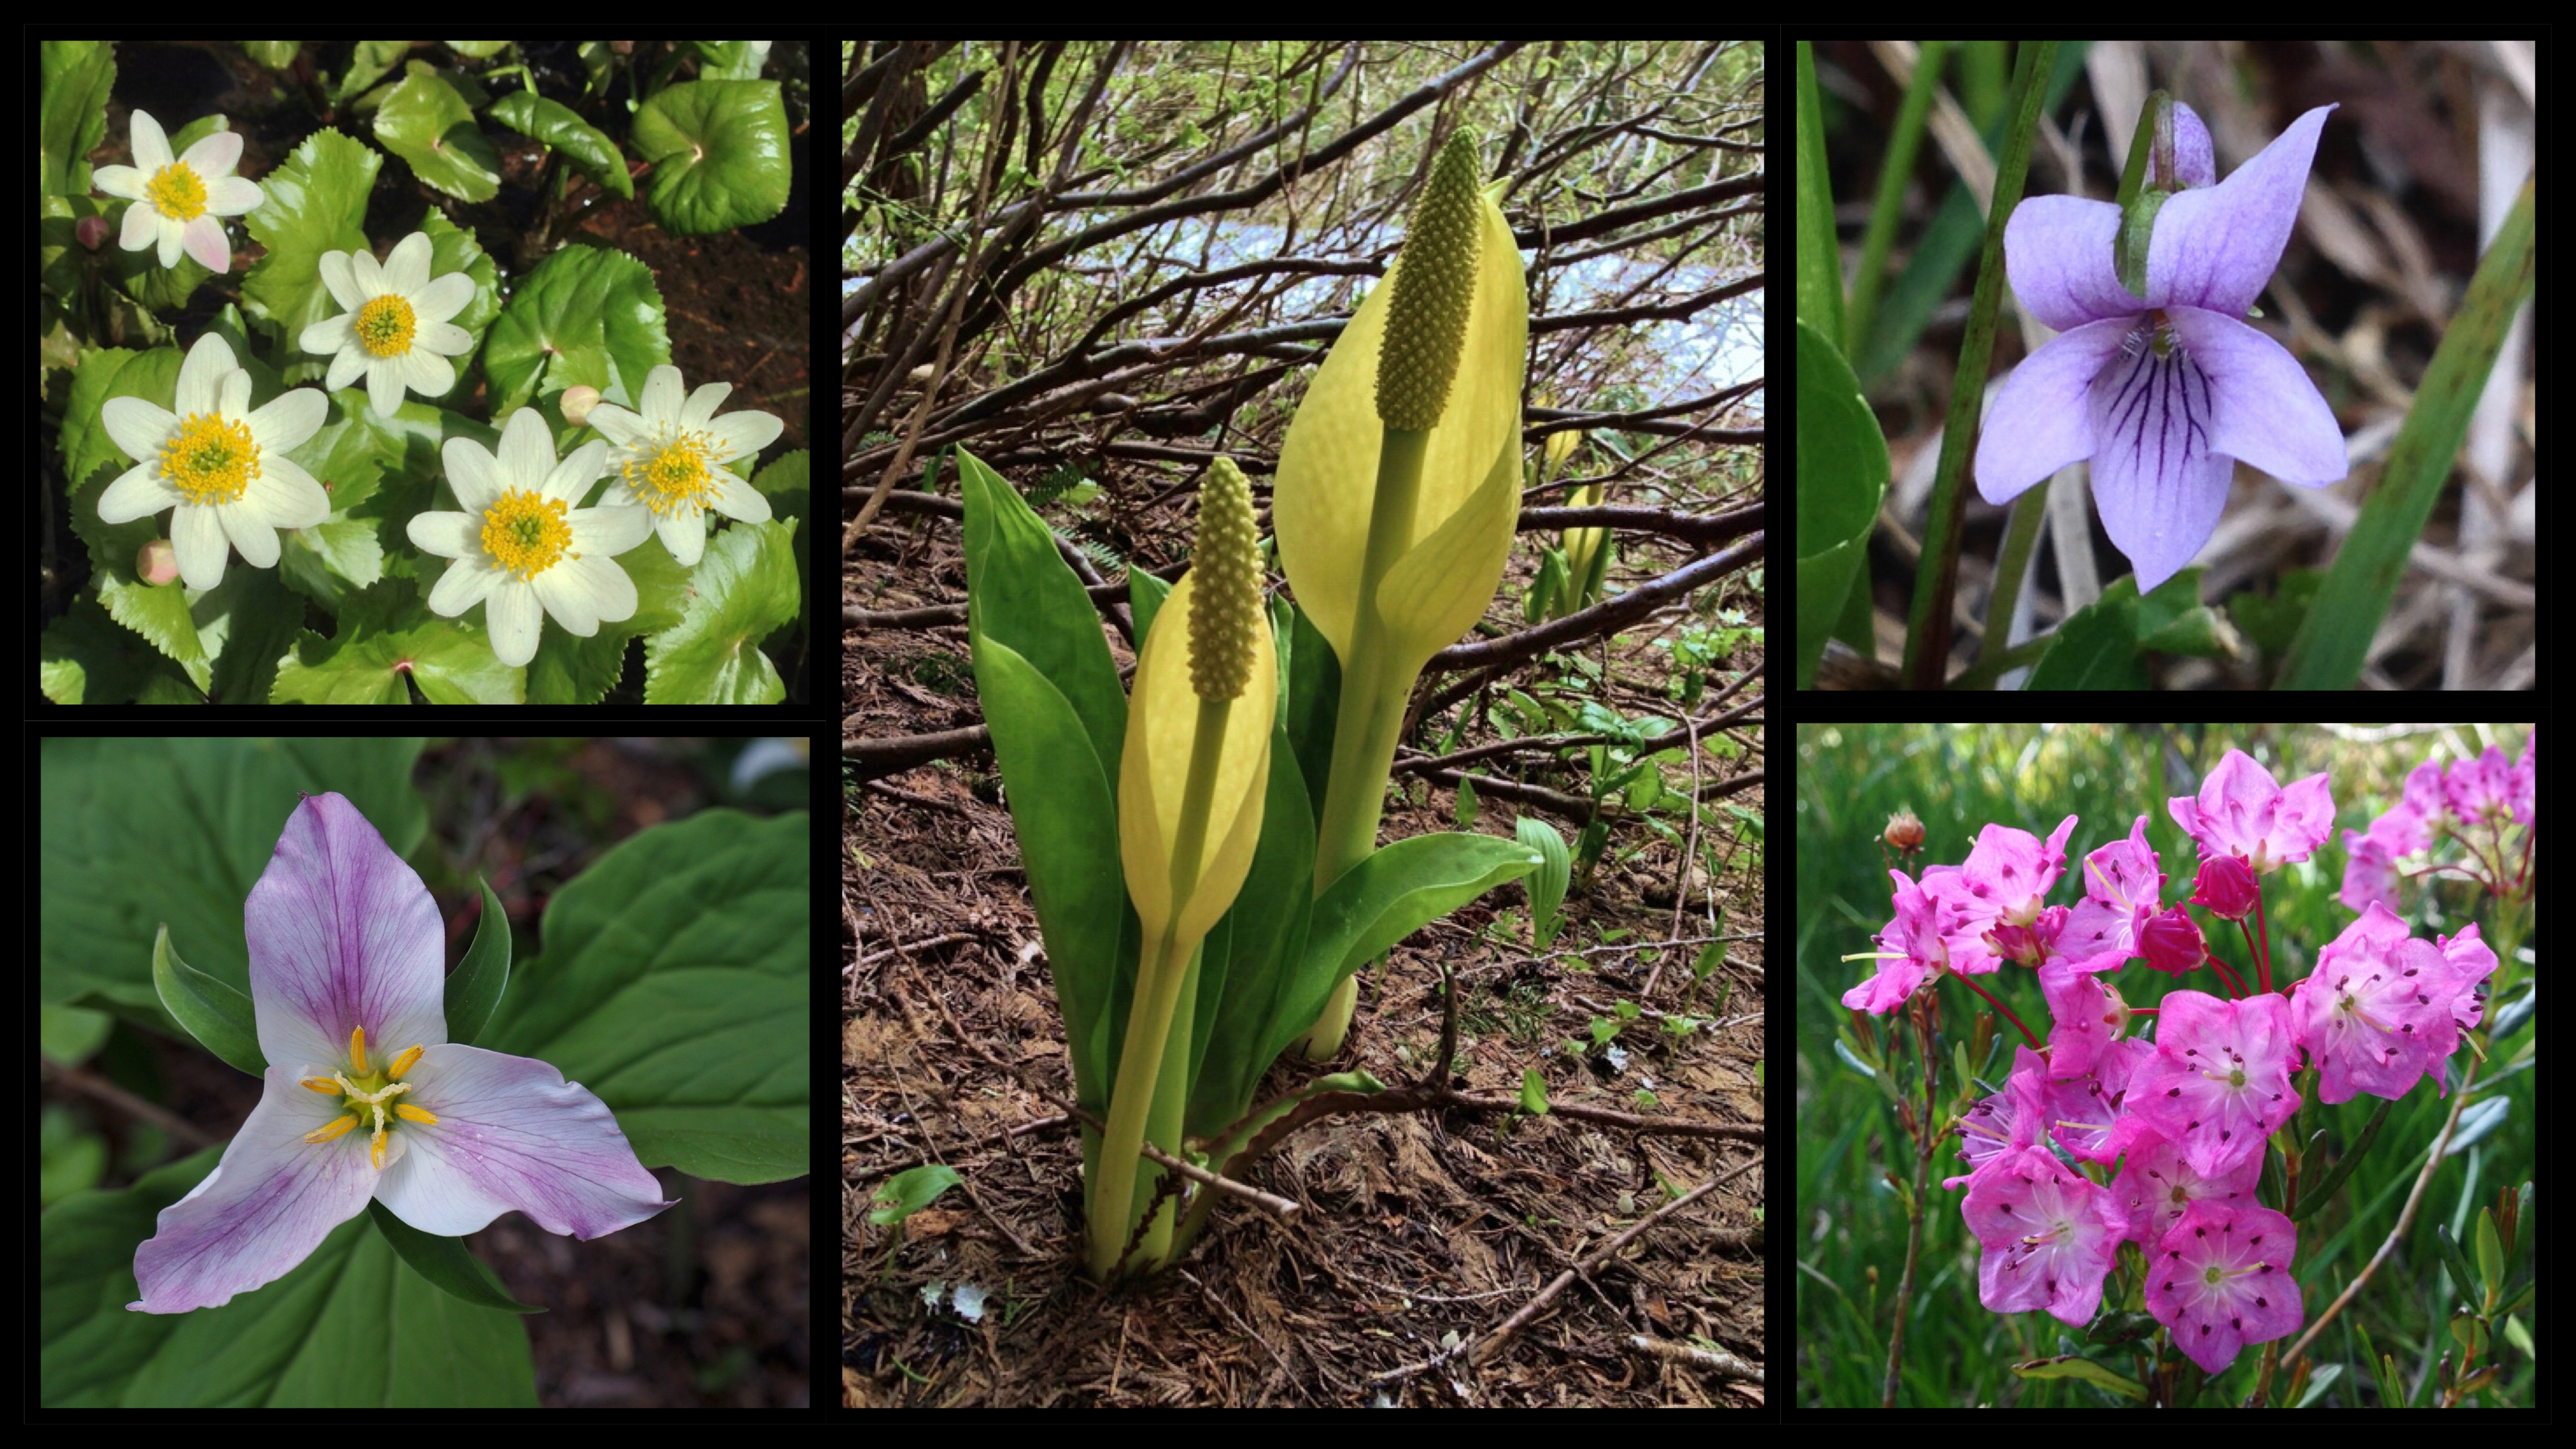 Along the lakes and trailside seeps, look for a variety of moisture-loving wildflowers, look for whimsical wildflowers, including white marsh marigolds (Caltha leptosepala) (upper left), Pacific trilliums (Trillium ovatum) (lower left), skunk cabbage (Lysichiton americanus) (center), marsh violets (Viola palustris) (upper right), and western bog laurel (Kalmia microphylla) (lower right). Talapus and Olallie Lakes Trail, June 09, 2013, May 30, 2016, and June 22, 2014.